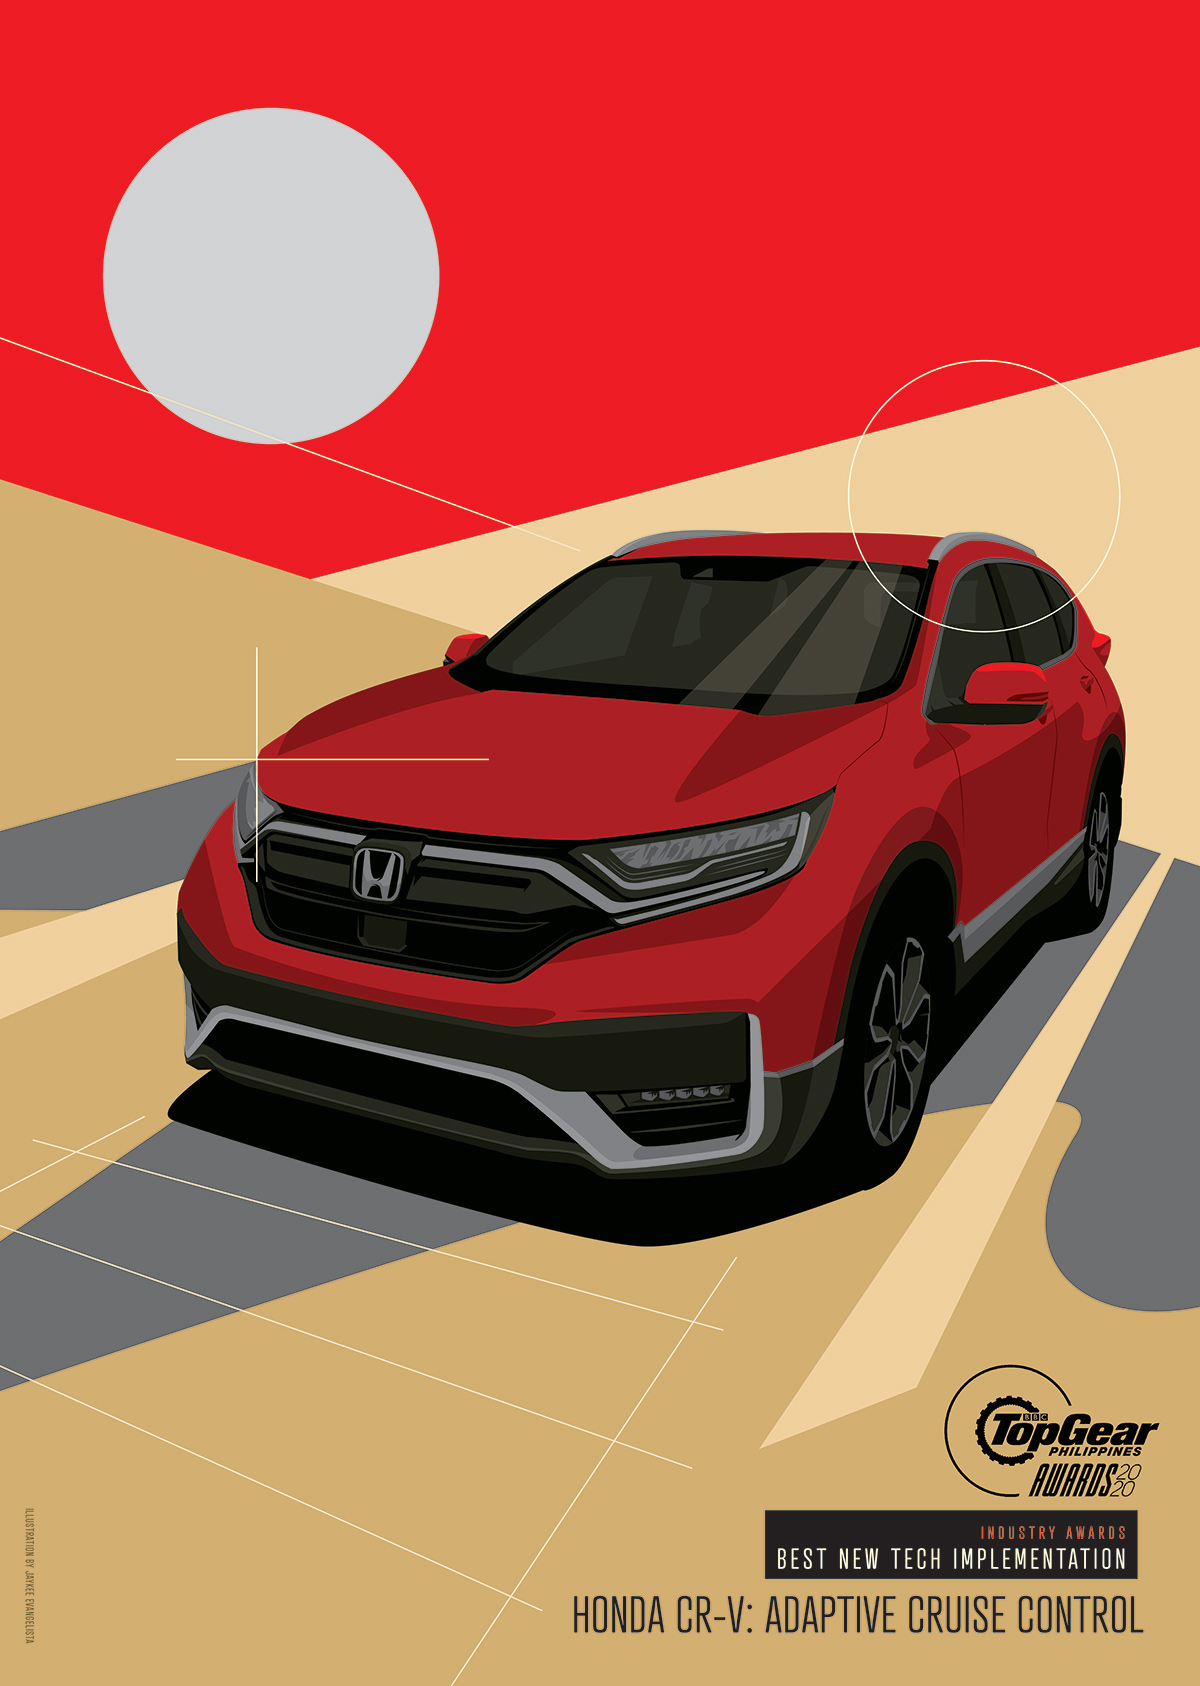 Top Gear Philippines' Best New Tech Implementation – Honda CR-V Adaptive Cruise Control